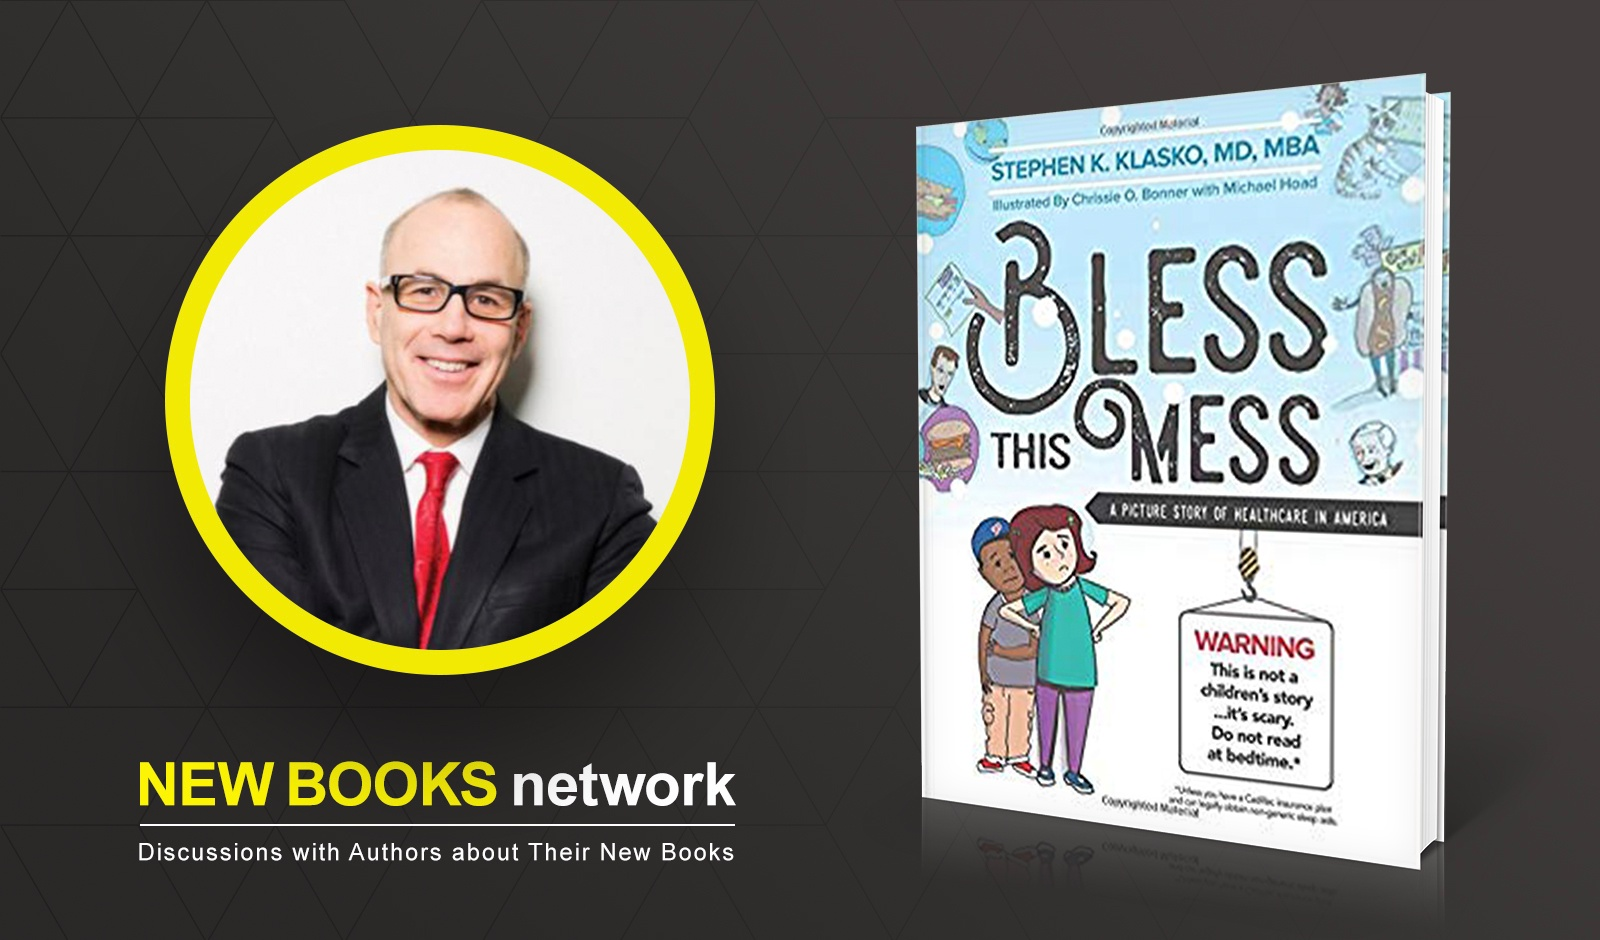 New Books In Medicine Podcast: Stephen Klasko's Creative Ideas For Healthcare Reform